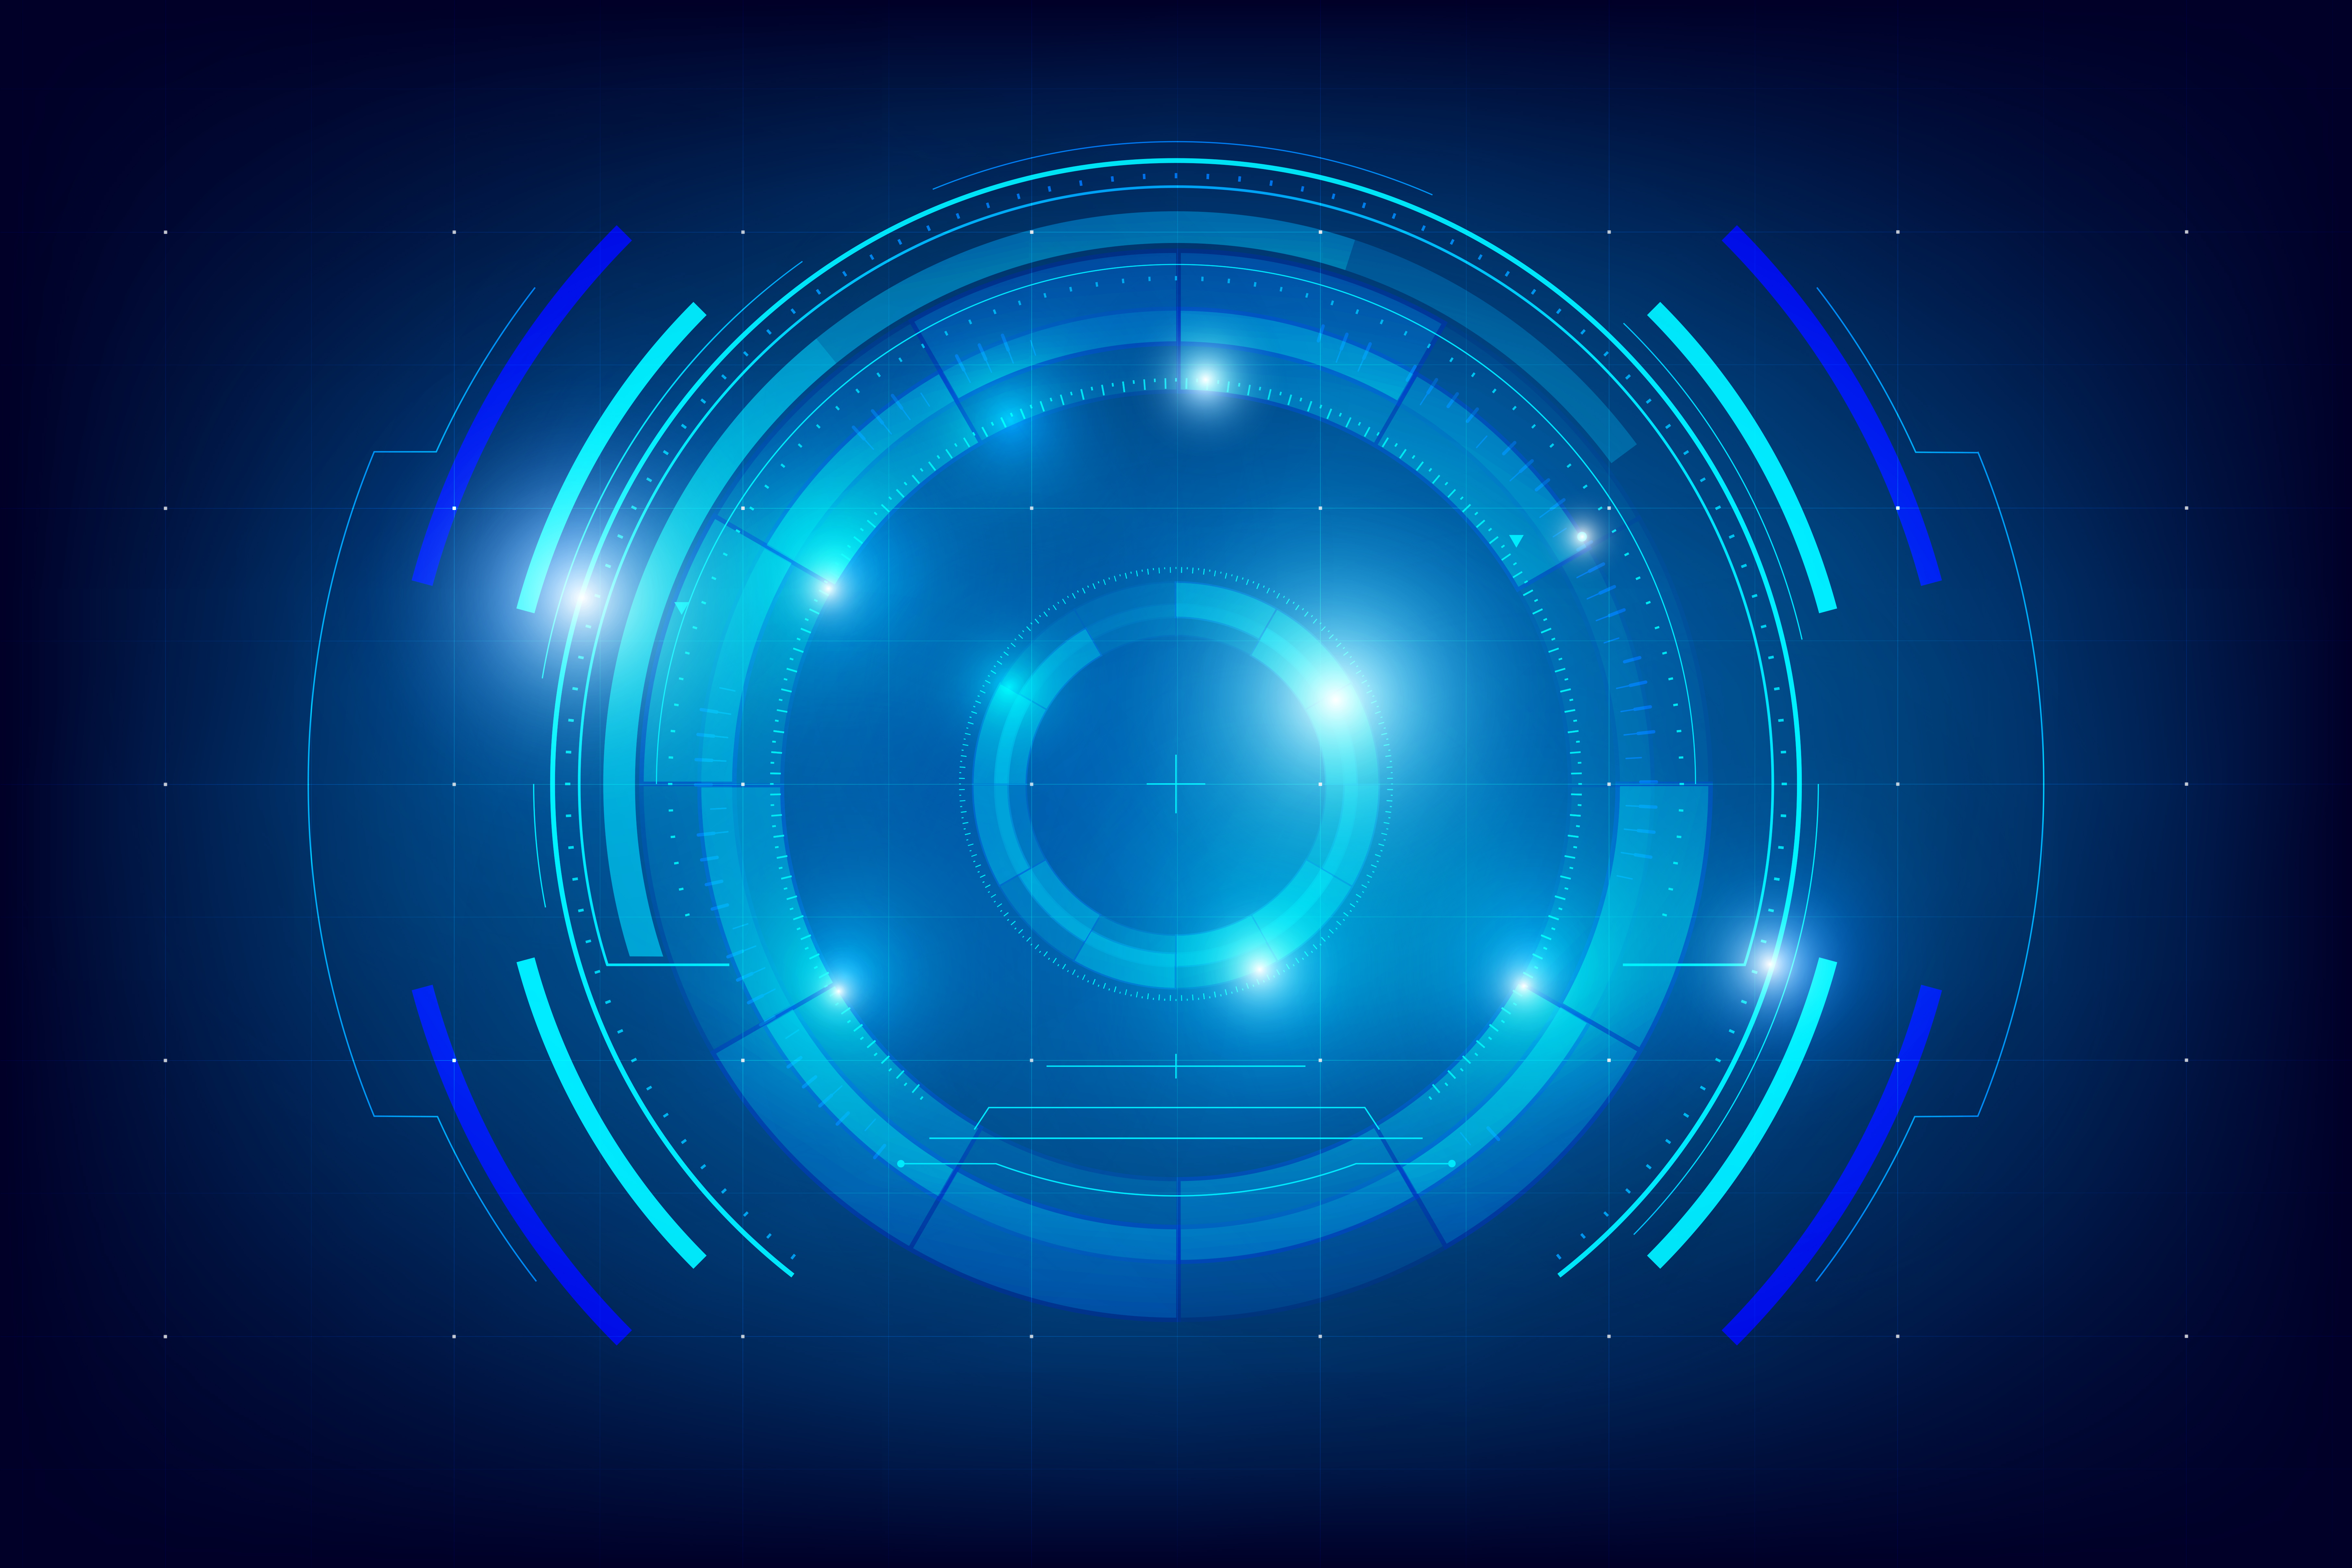 Abstract Technology Wallpaper Group With 78 Items: Abstract HUD Technology Background 004